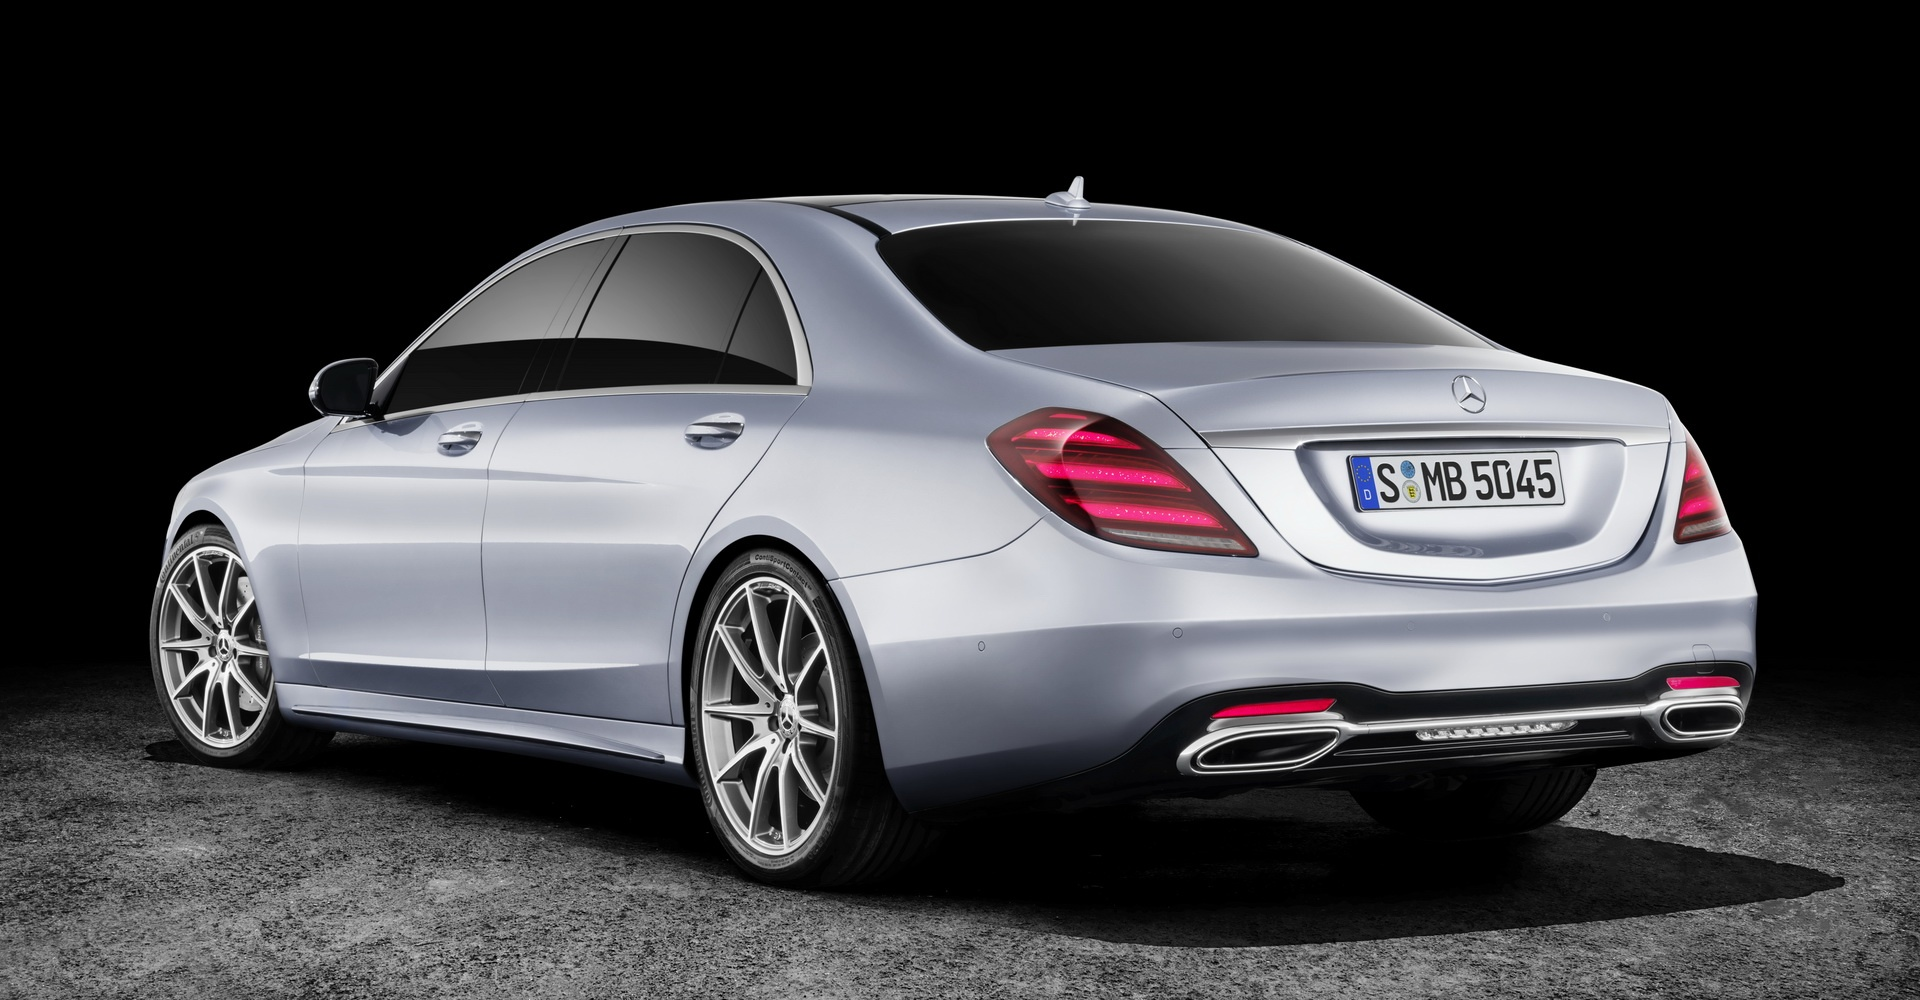 Mercedes-Benz S-Class 2021 co dep hon the he truoc? anh 7